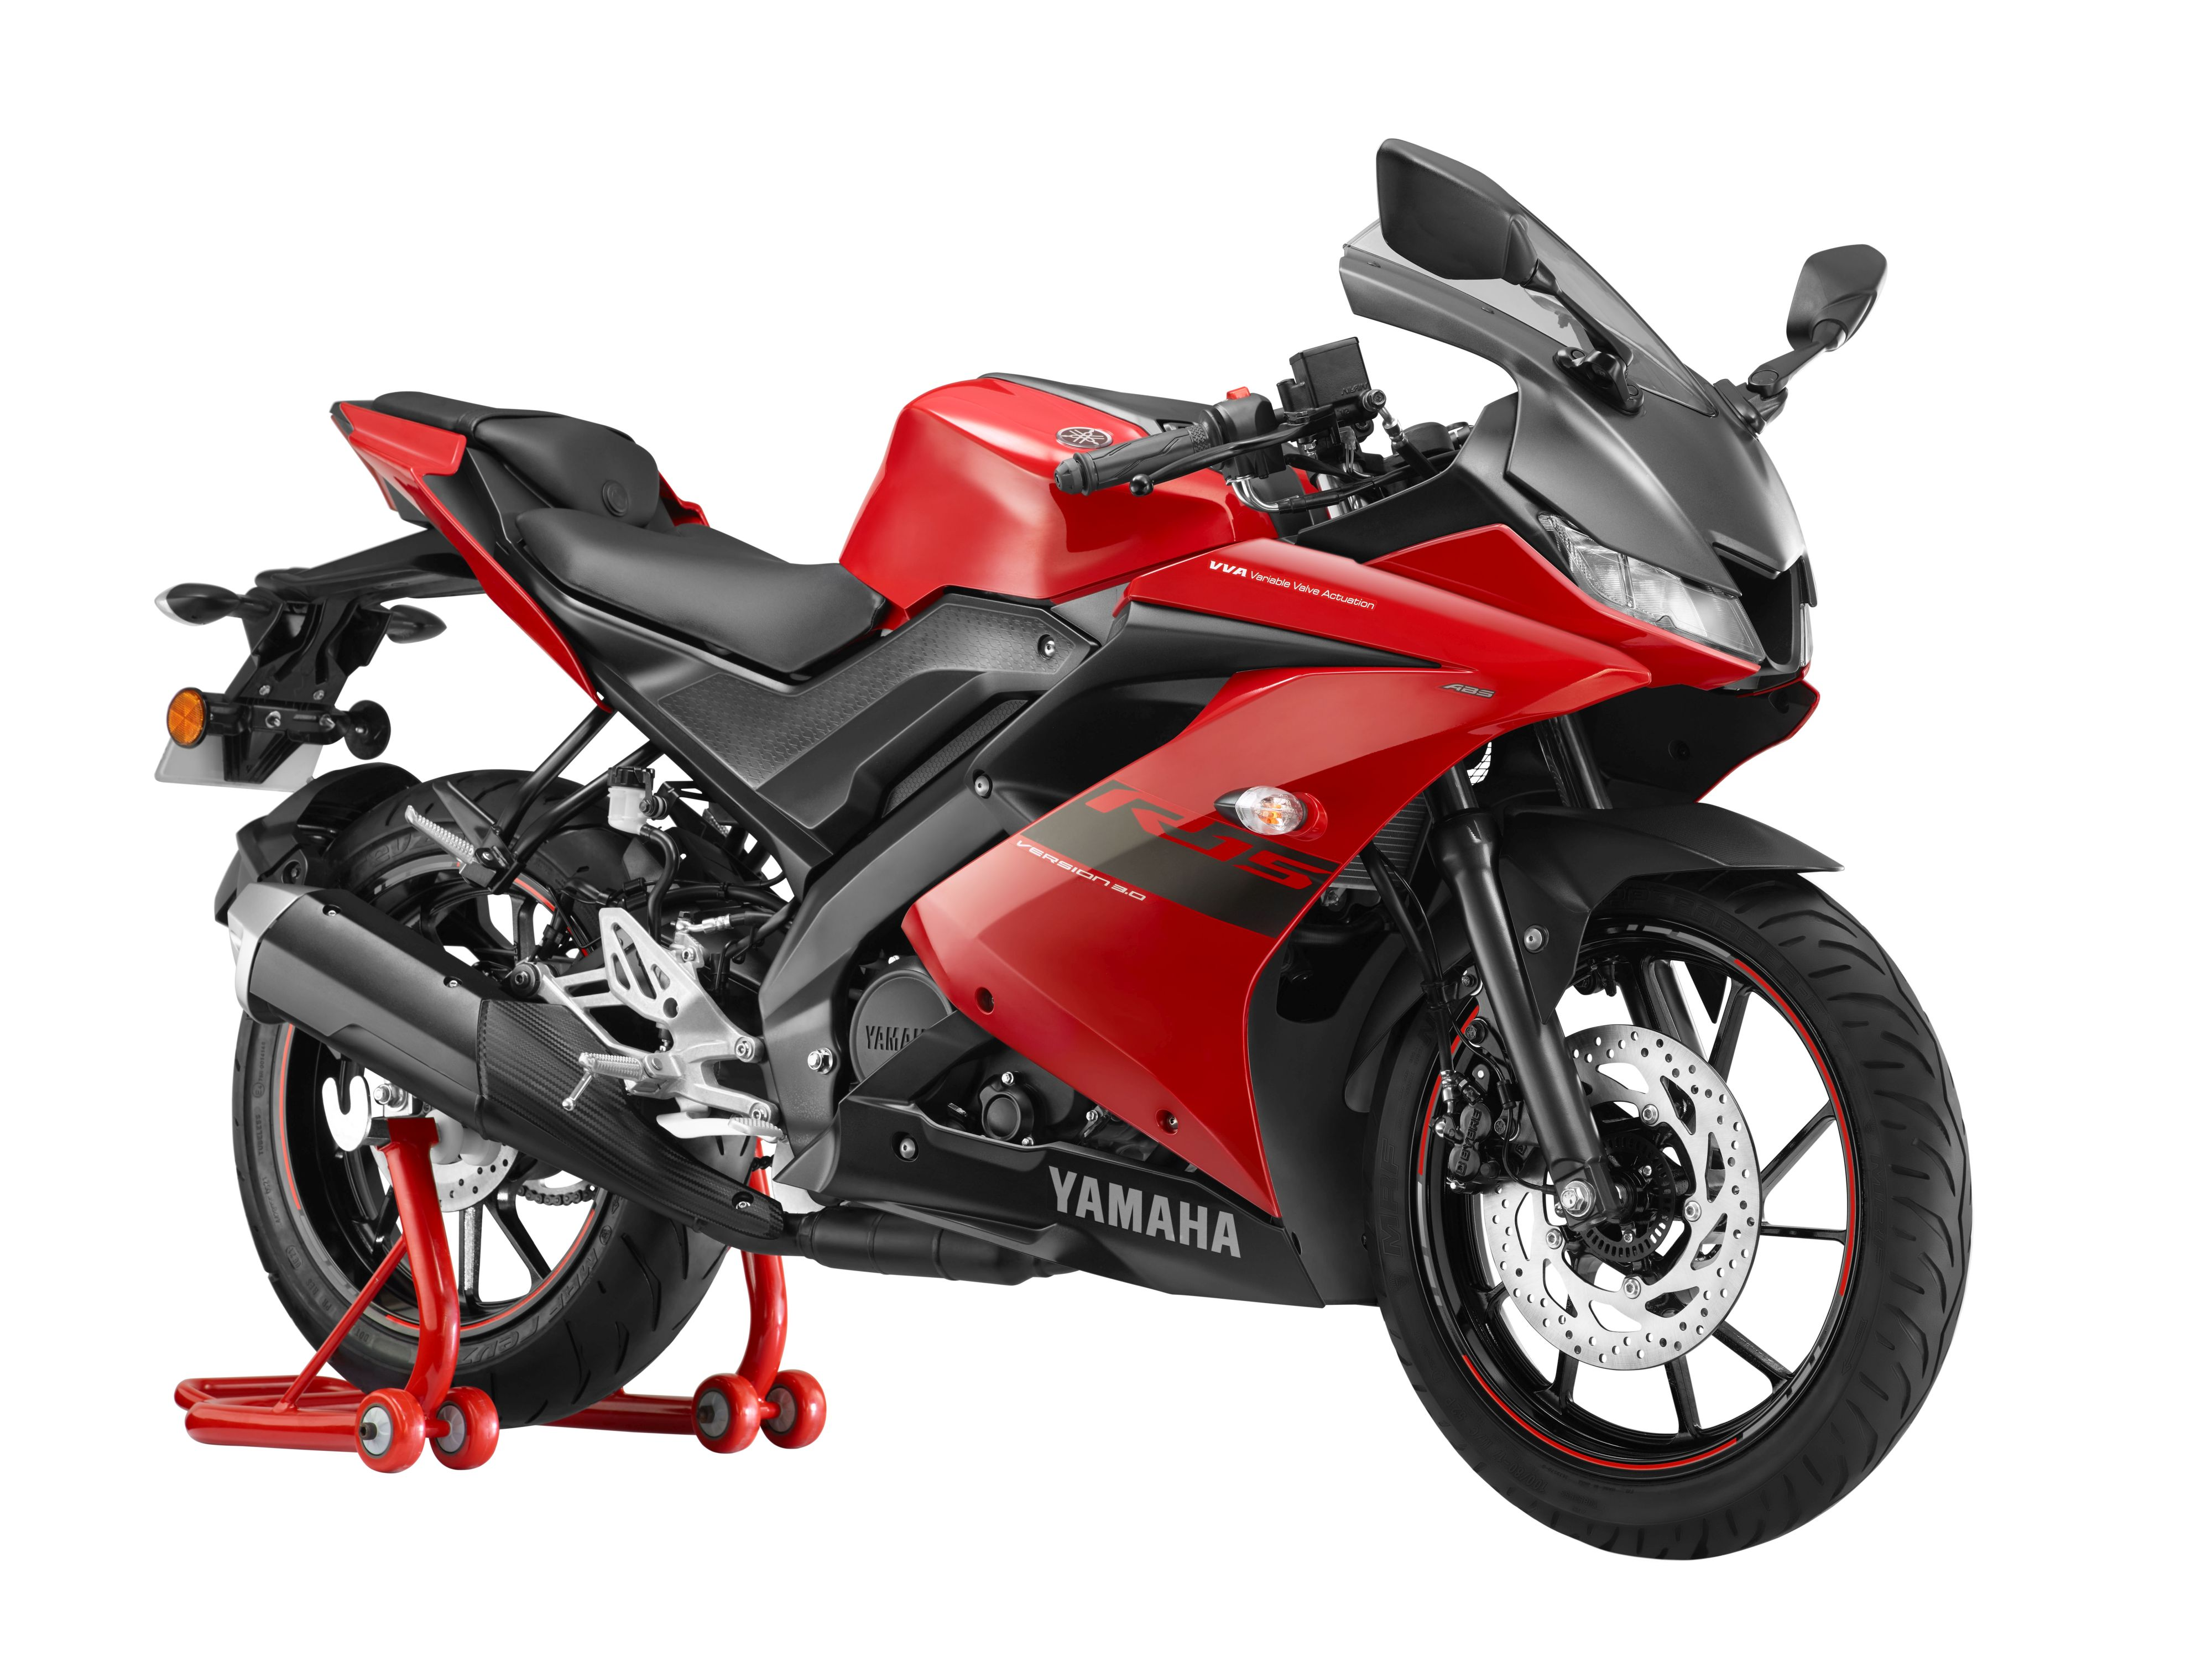 Yamaha unveils YZF-R15 3.0 in 'Metallic Red' colour